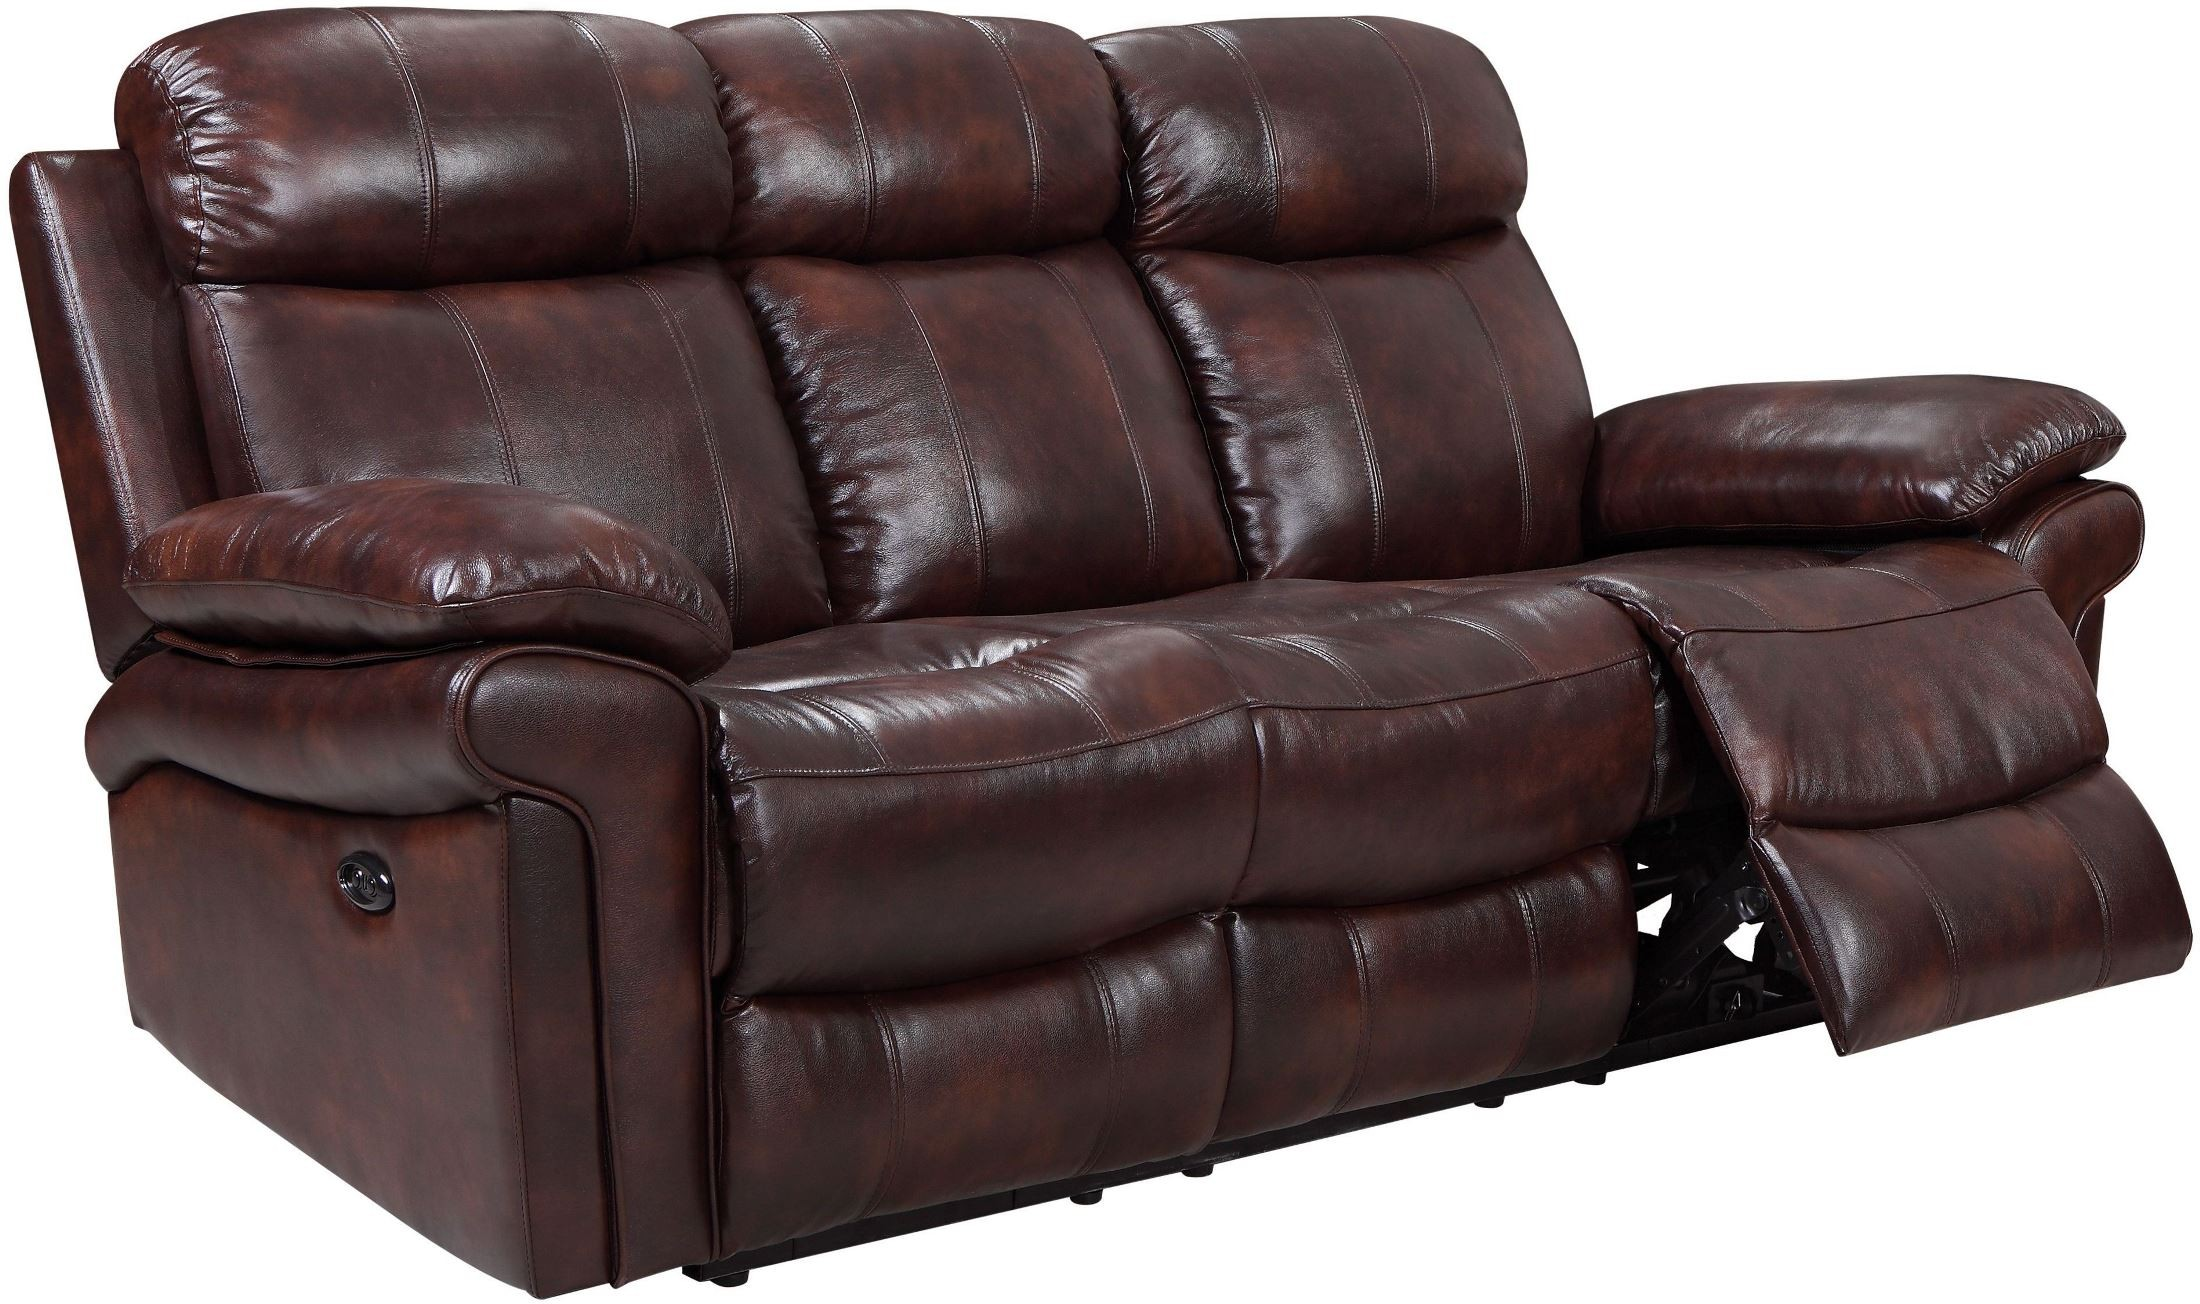 headrest power reclining leather summerlands with recliner sofa product